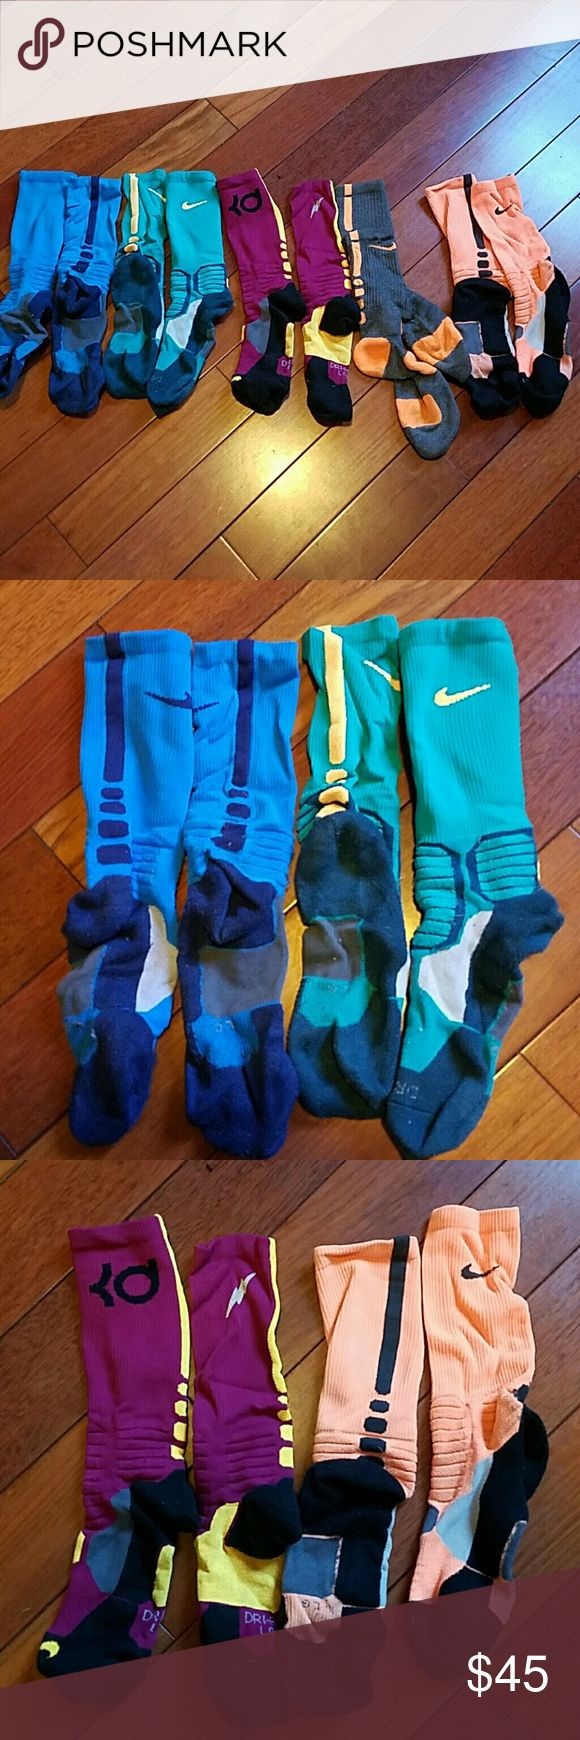 Nike Elite socks bundle Nike Elite socks bundle  5 pairs Blue on blue  sz L Teal and yellowish orange - sz L KD socks - sz L Orange and black - sz L Orange and gray - L  All in really good condition! Nike  Underwear & Socks